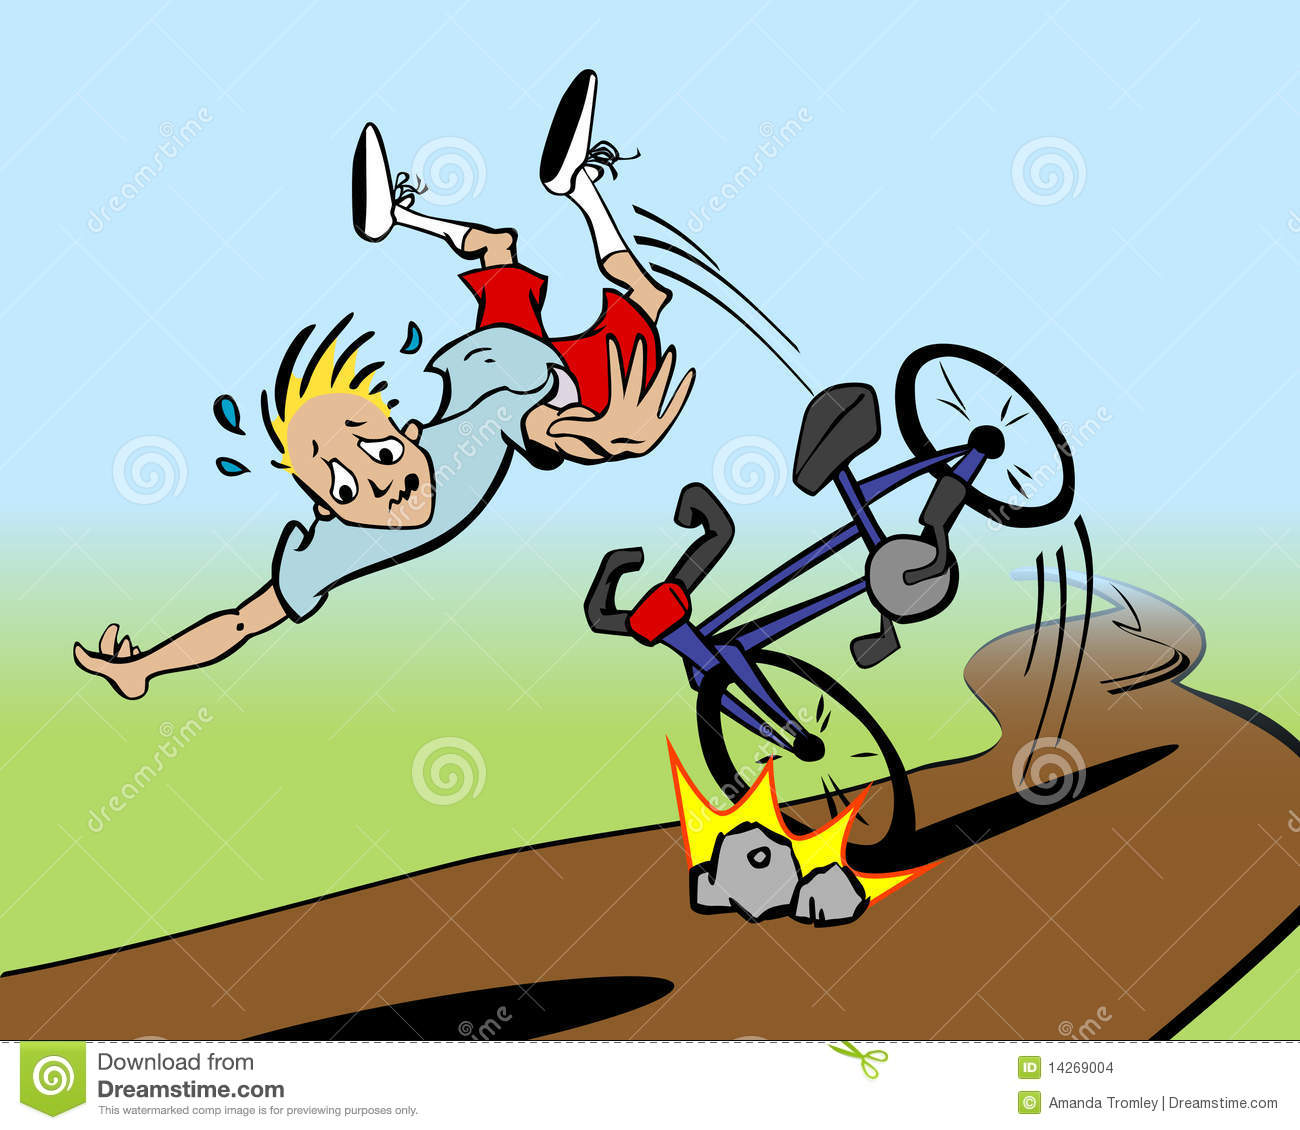 Cartoon of man being thrown from his bicycle.